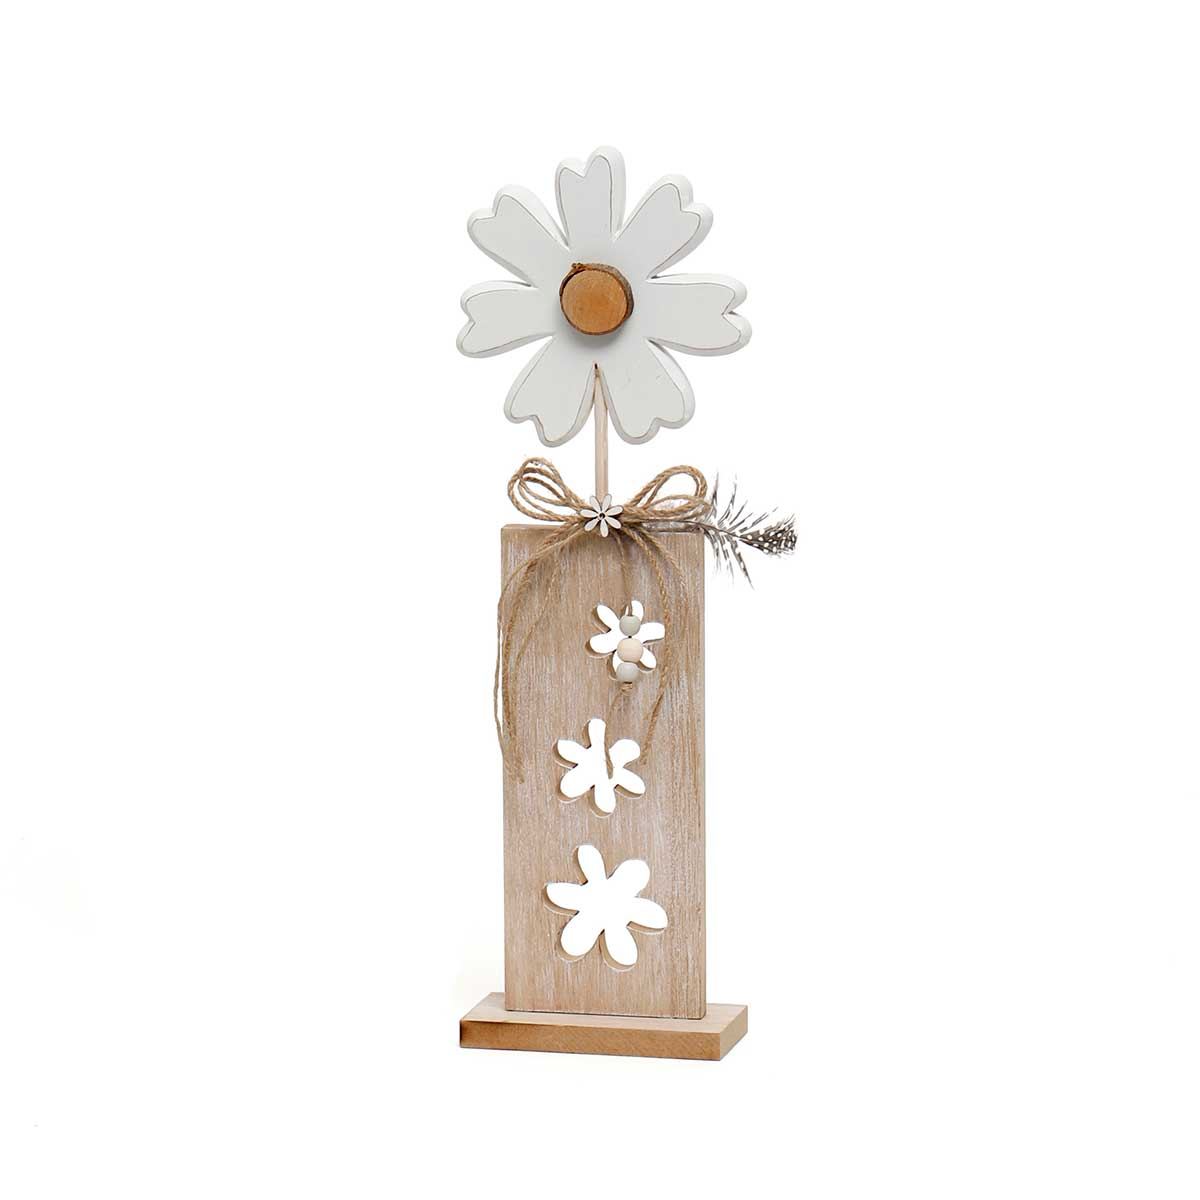 WOOD FLOWER WITH FLOWER CUTOUTS ON STAND